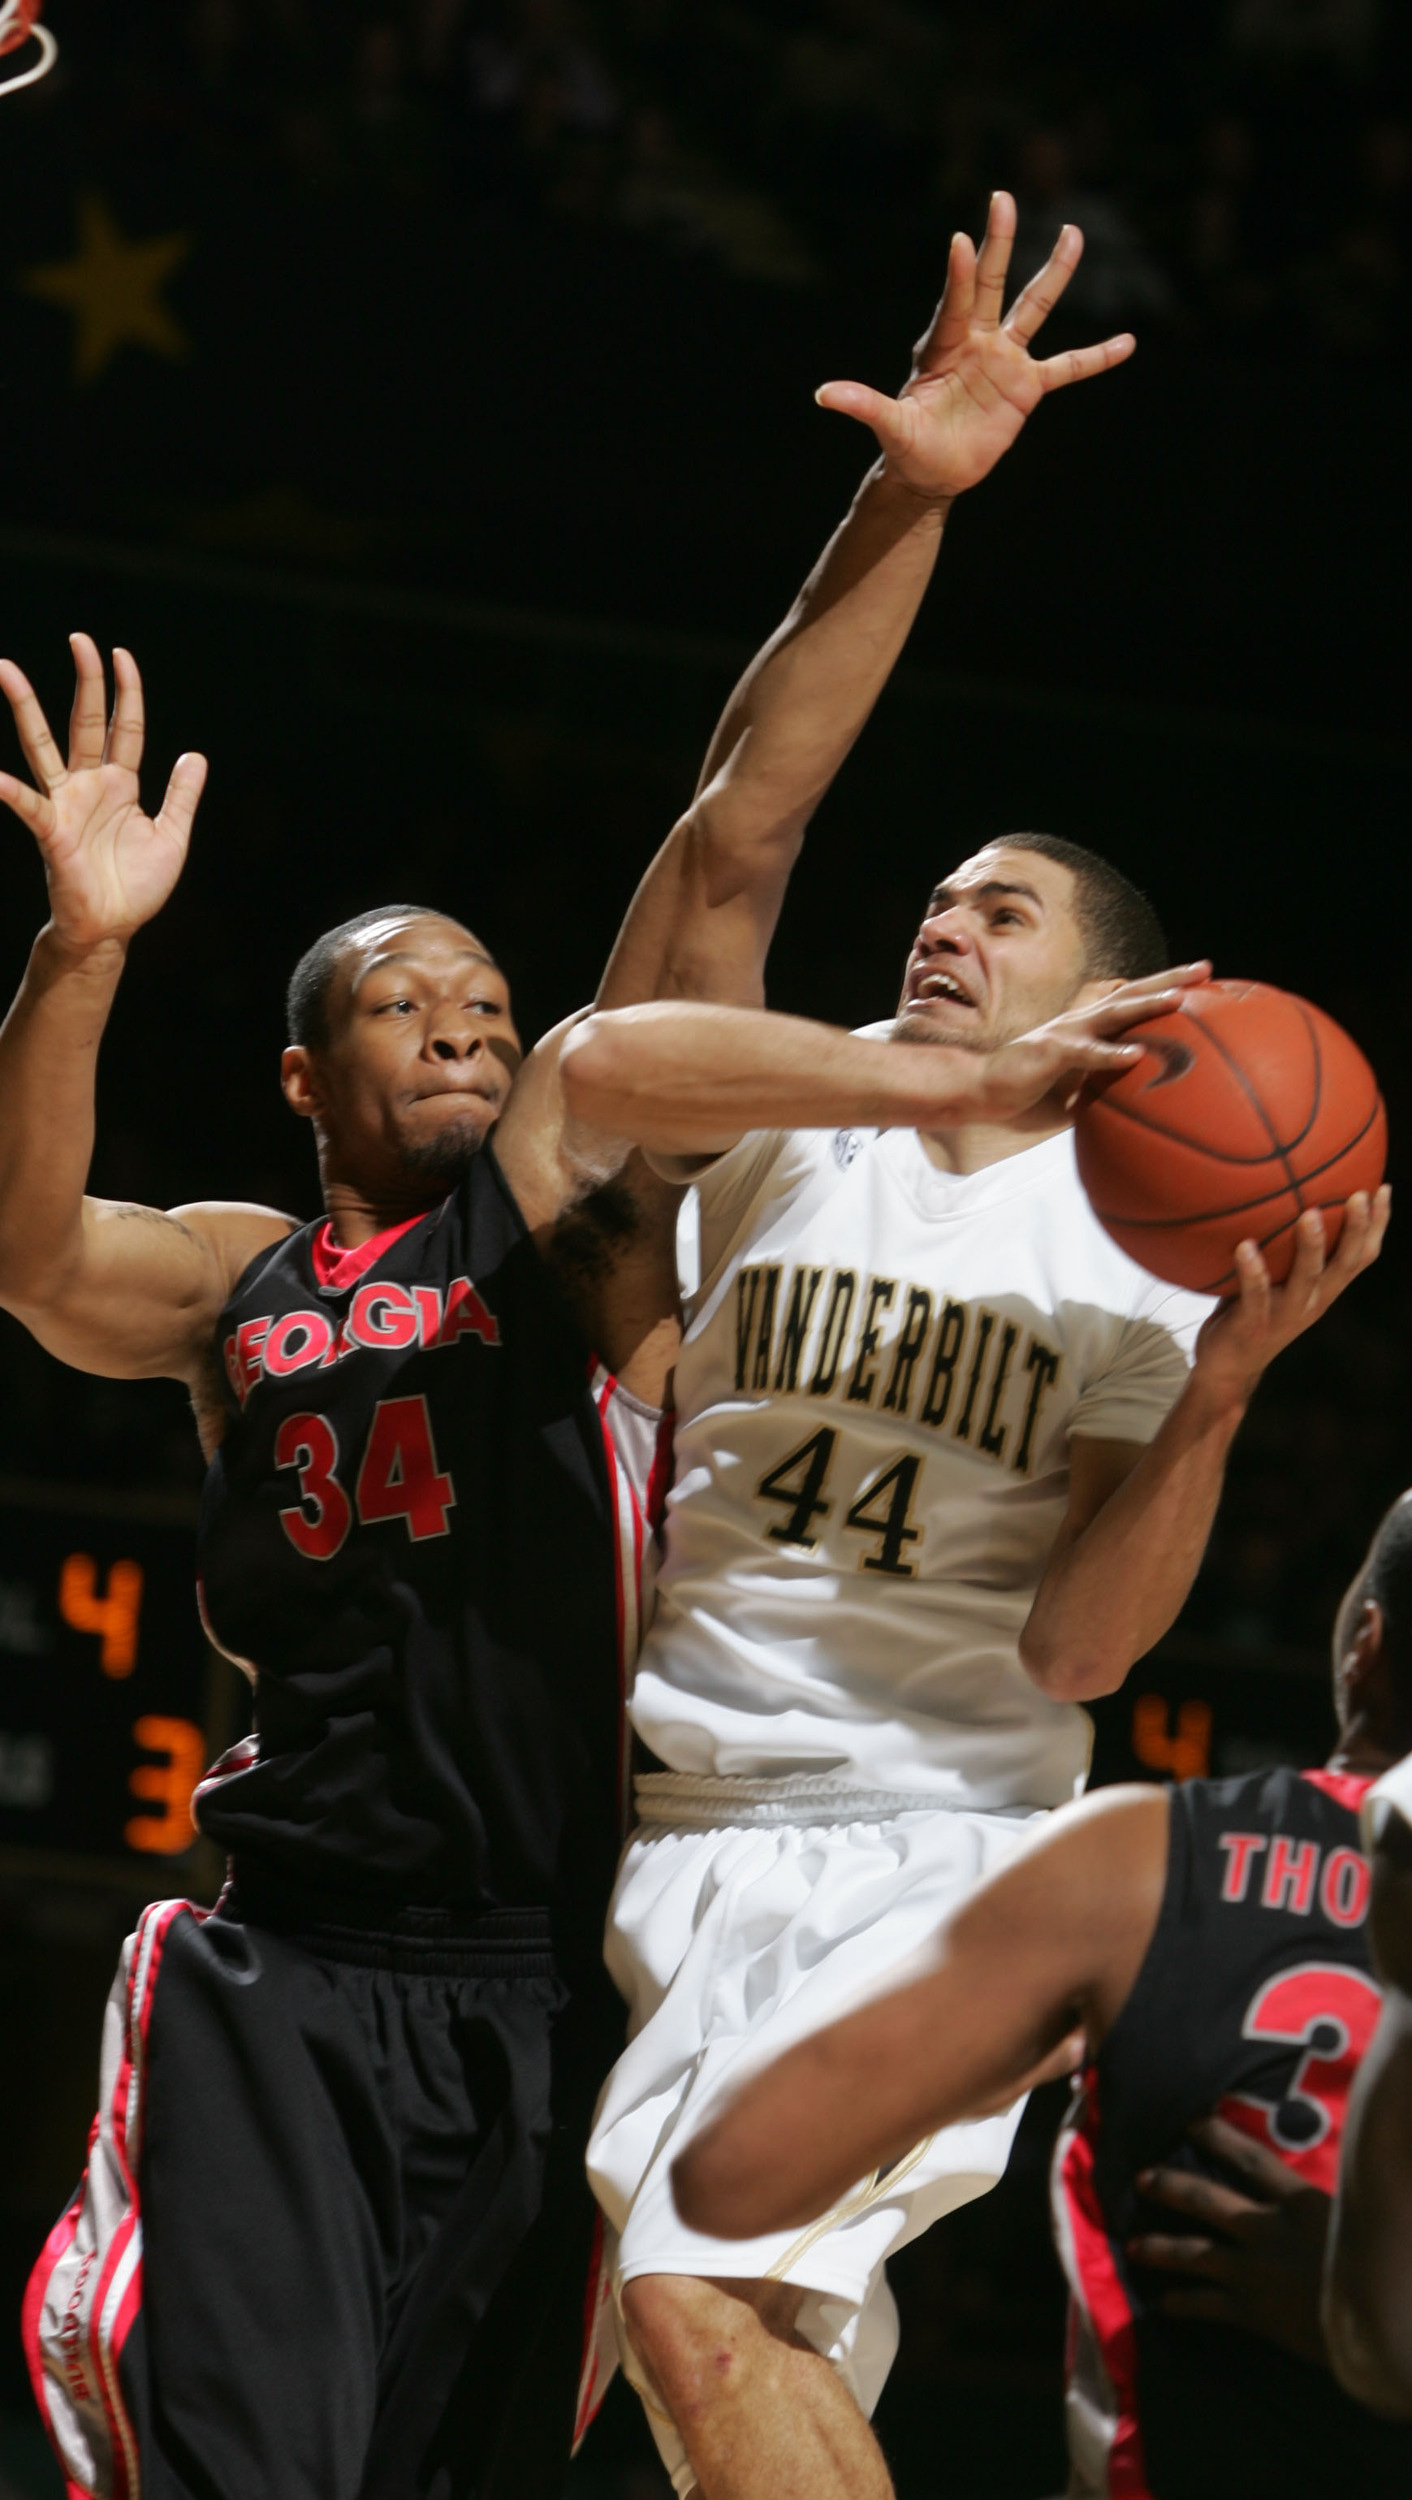 Vanderbilt's Jeffery Taylor (44) goes to the net as Georgia's Albert Jackson (34) guards Thursday, February 25, 2010 in Nashville, Tenn.